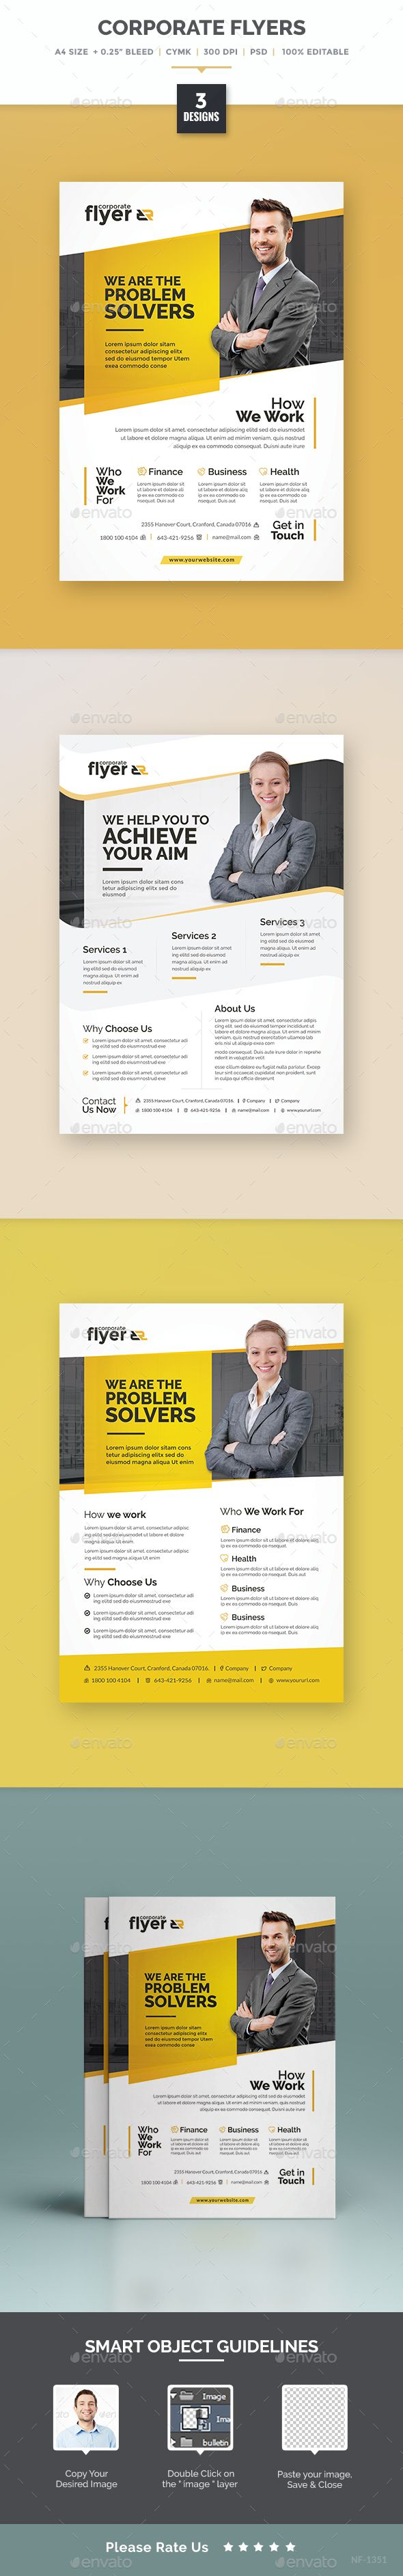 Corporate Flyer Designs Templates PSD. Download here: graphicriver.net/...